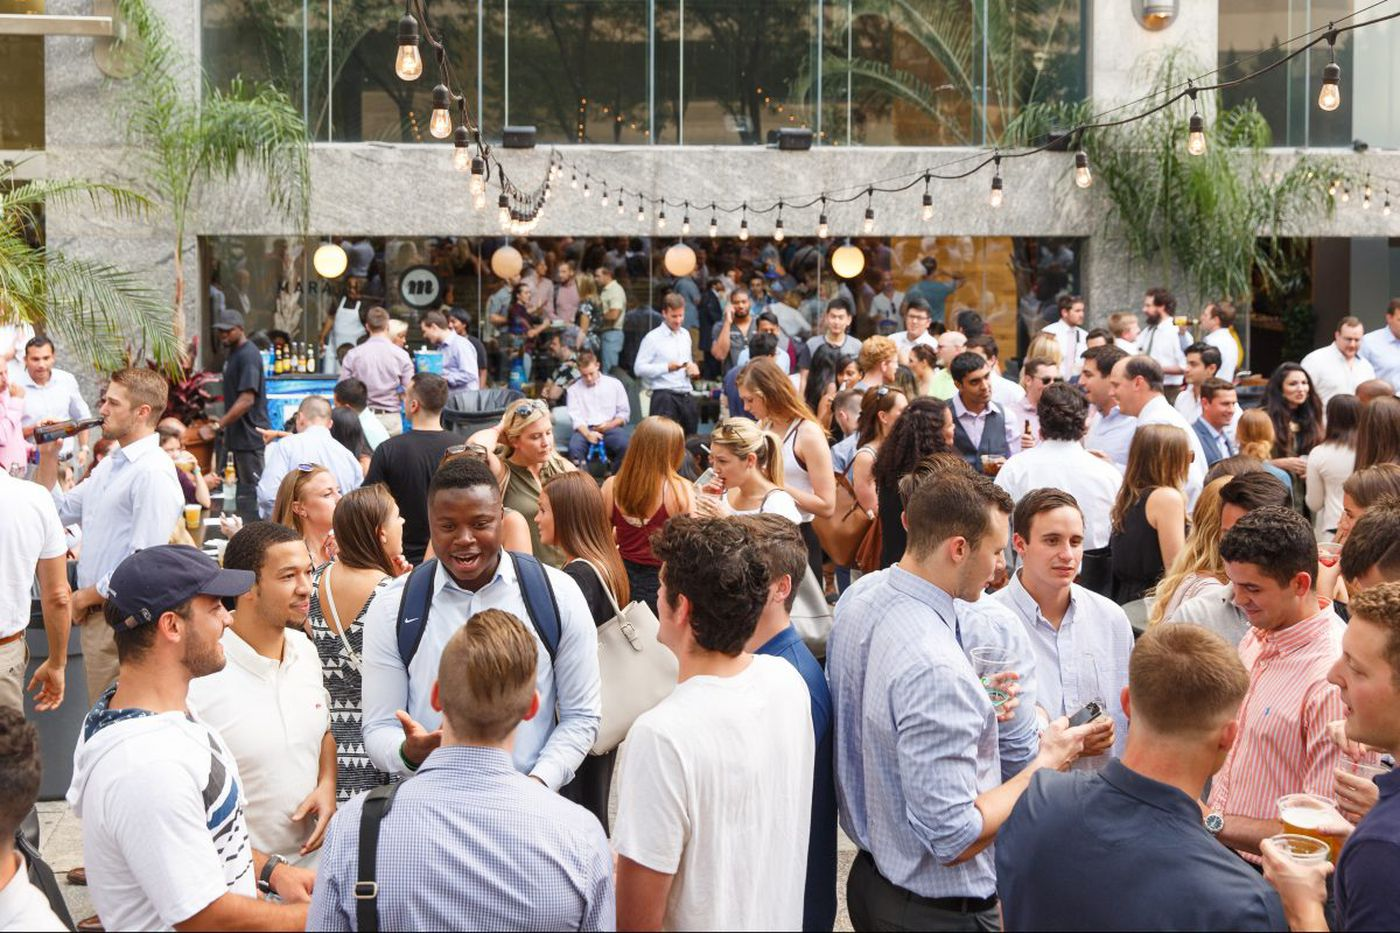 Fashion meets cocktails at Center City Sips